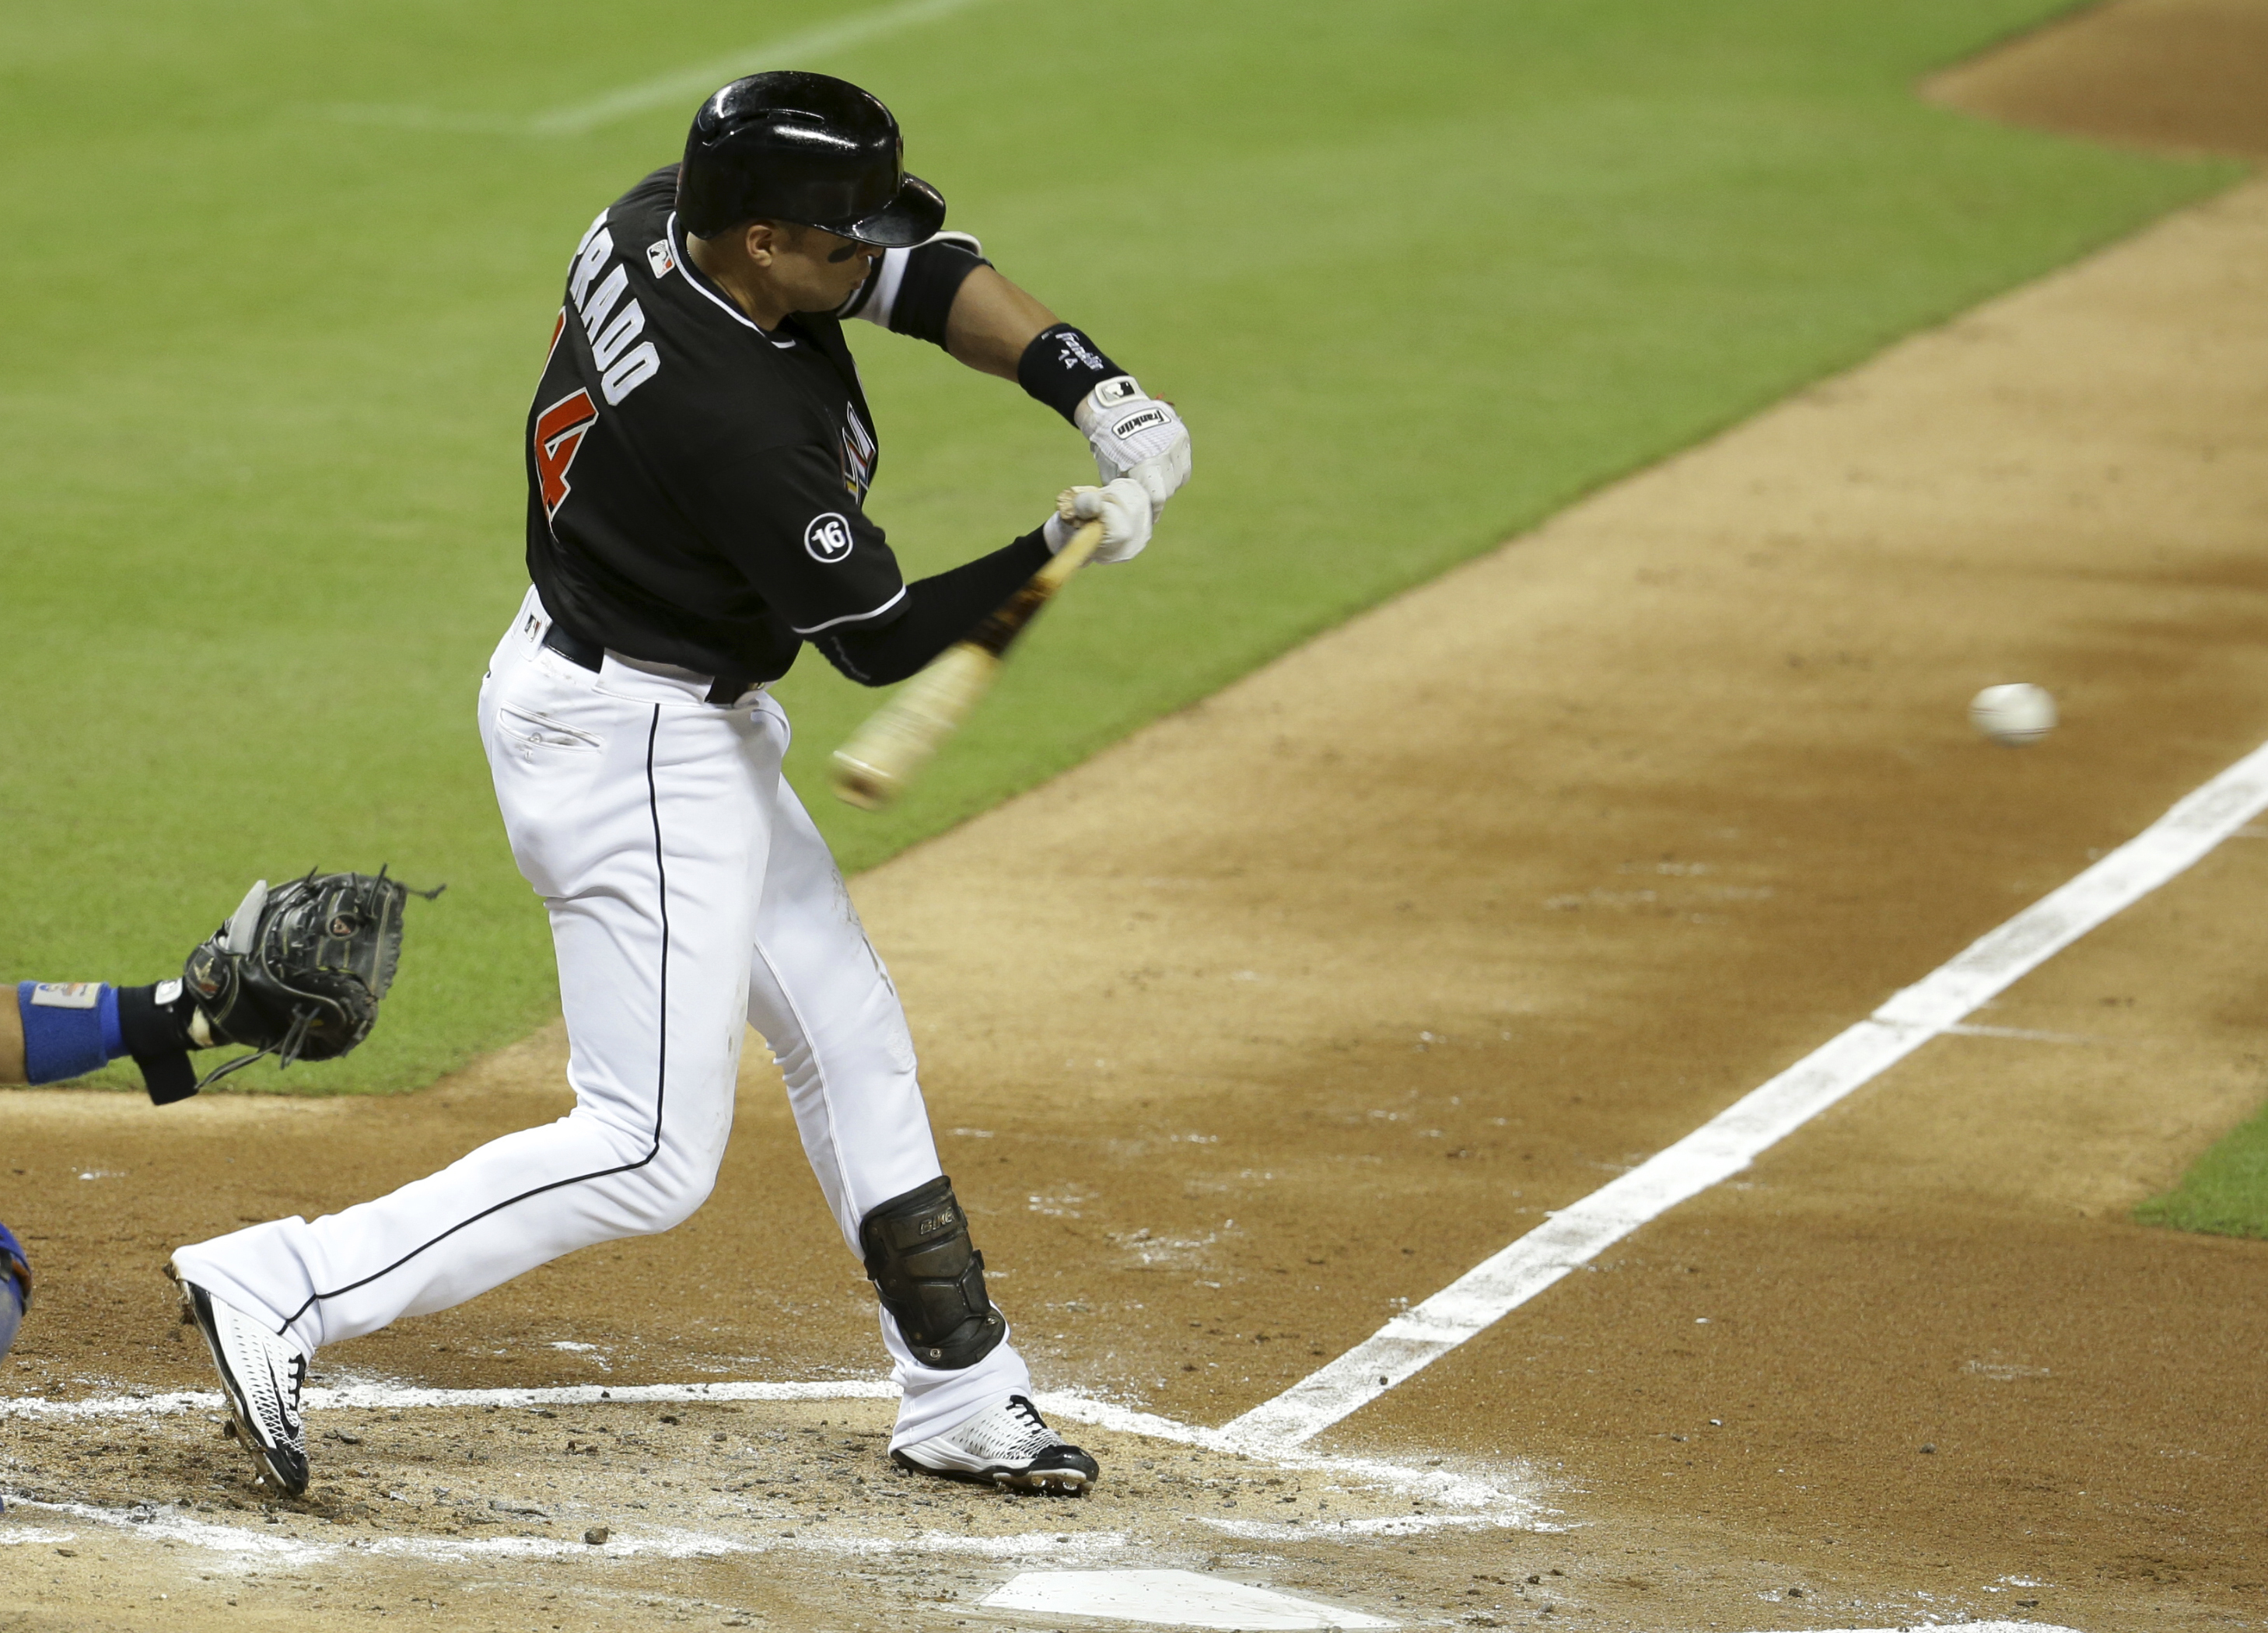 Miami Marlins' Martin Prado hits a single in the fourth inning of a baseball game against the New York Mets, Wednesday, Sept. 28, 2016, in Miami. (AP Photo/Lynne Sladky)